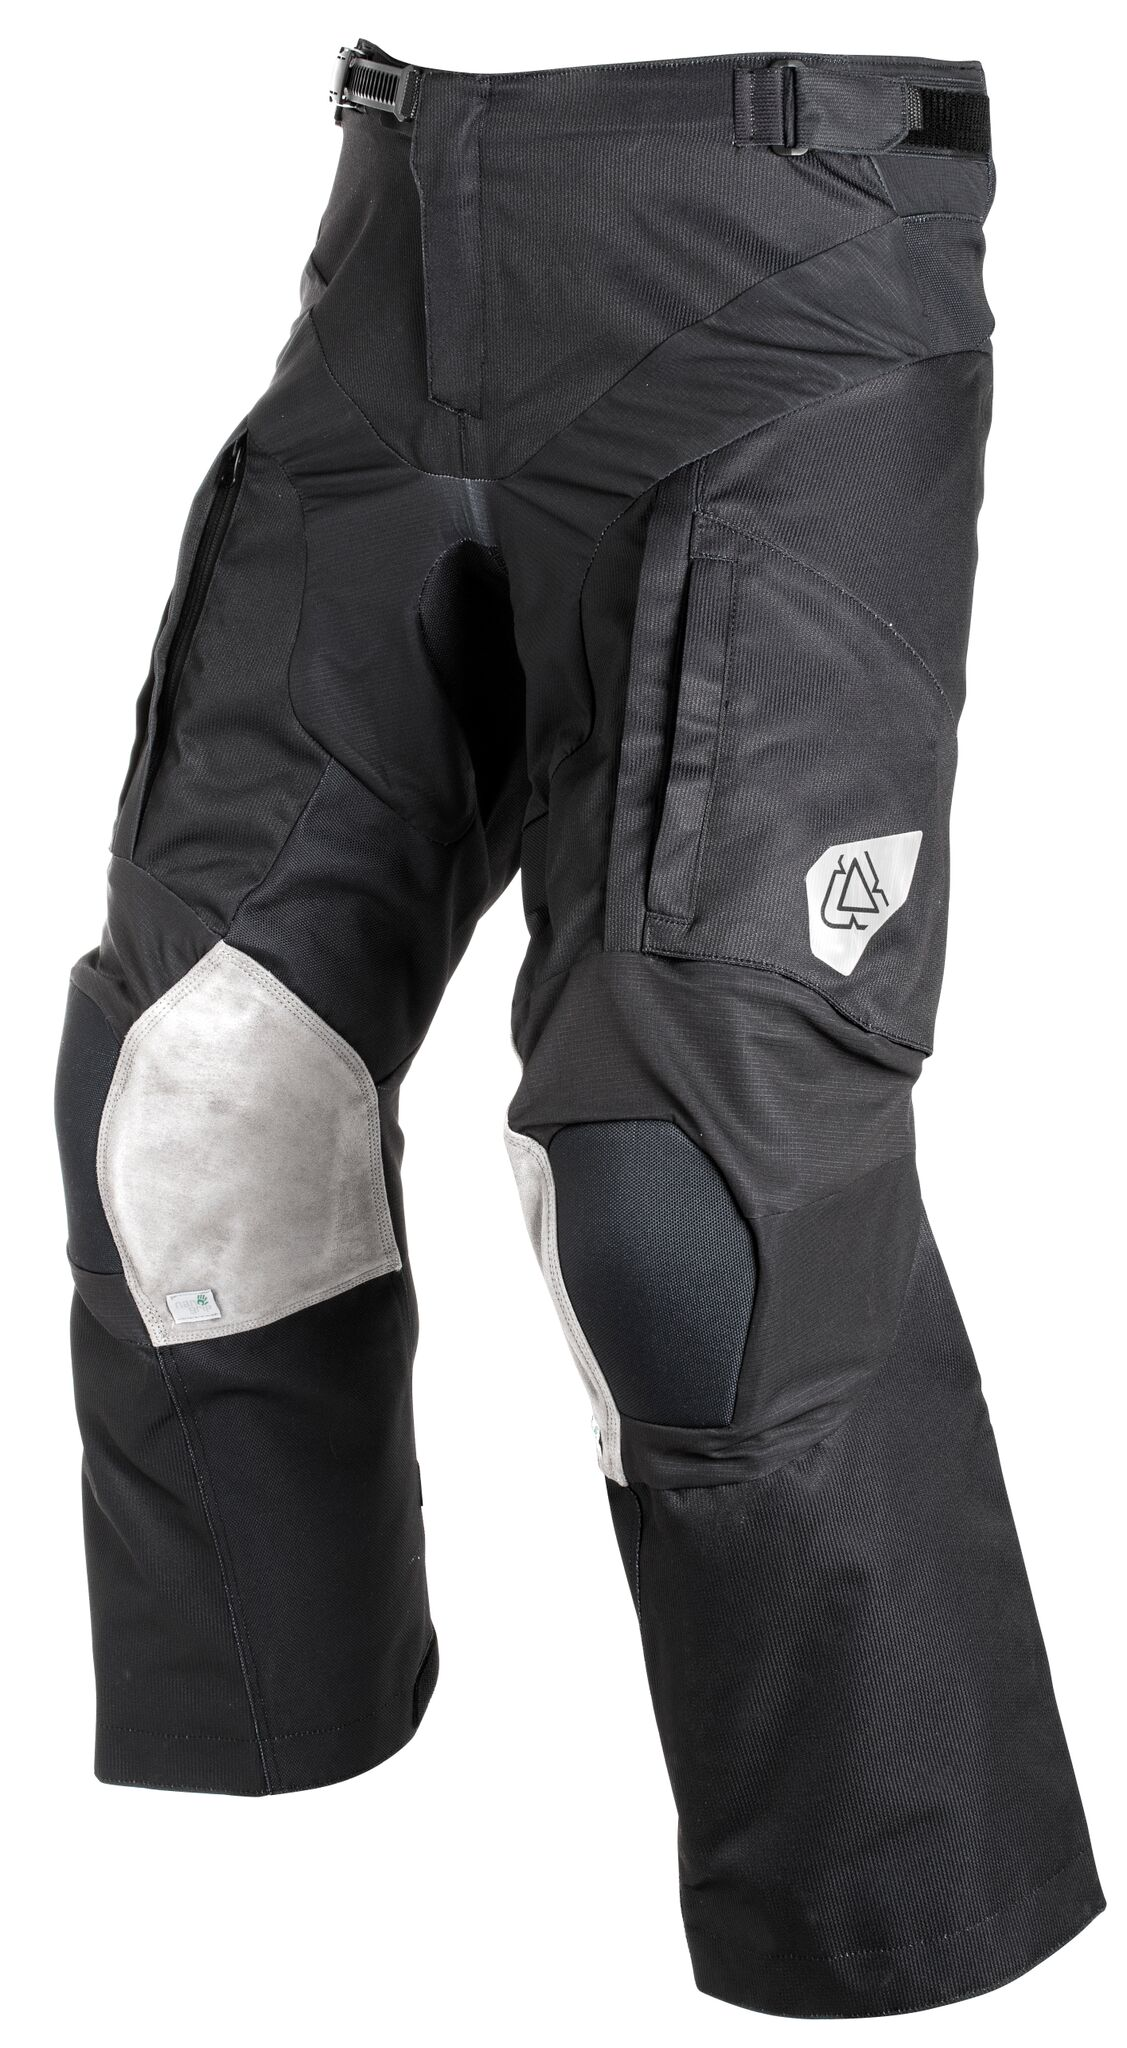 GPX 5.5 Enduro Black Grey Pants 2.JPG